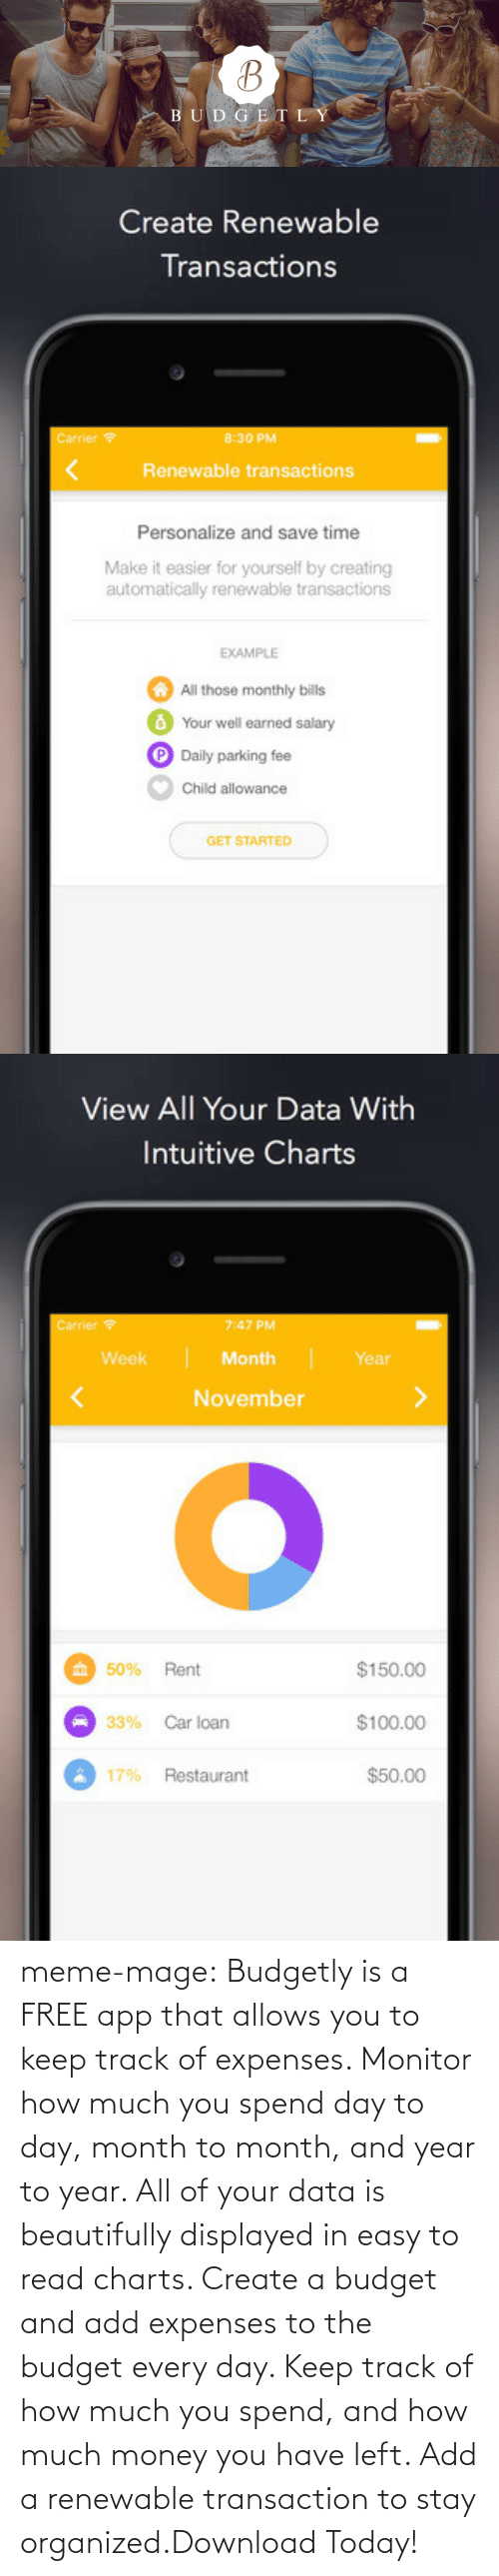 Transaction: U D G E T L Y   Create Renewable  Transactions  Carrier  8:30 PM  <  Renewable transactions  Personalize and save time  Make it easier for yourself by creating  automatically renewable transactions  EXAMPLE  All those monthly bills  Your well earned salary  Daily parking fee  Child allowance  GET STARTED   View All Your Data With  Intuitive Charts  Carrier  7:47 PM  Month  November  Week  Year  $150.00  $100.00  $50.00  50% Rent  33%  Car loan  17% Restaurant meme-mage:    Budgetly is a FREE app that allows you to keep track of expenses. Monitor how much you spend day to day, month to month, and year to year. All of your data is beautifully displayed in easy to read charts. Create a budget and add expenses to the budget every day. Keep track of how much you spend, and how much money you have left. Add a renewable transaction to stay organized.Download Today!